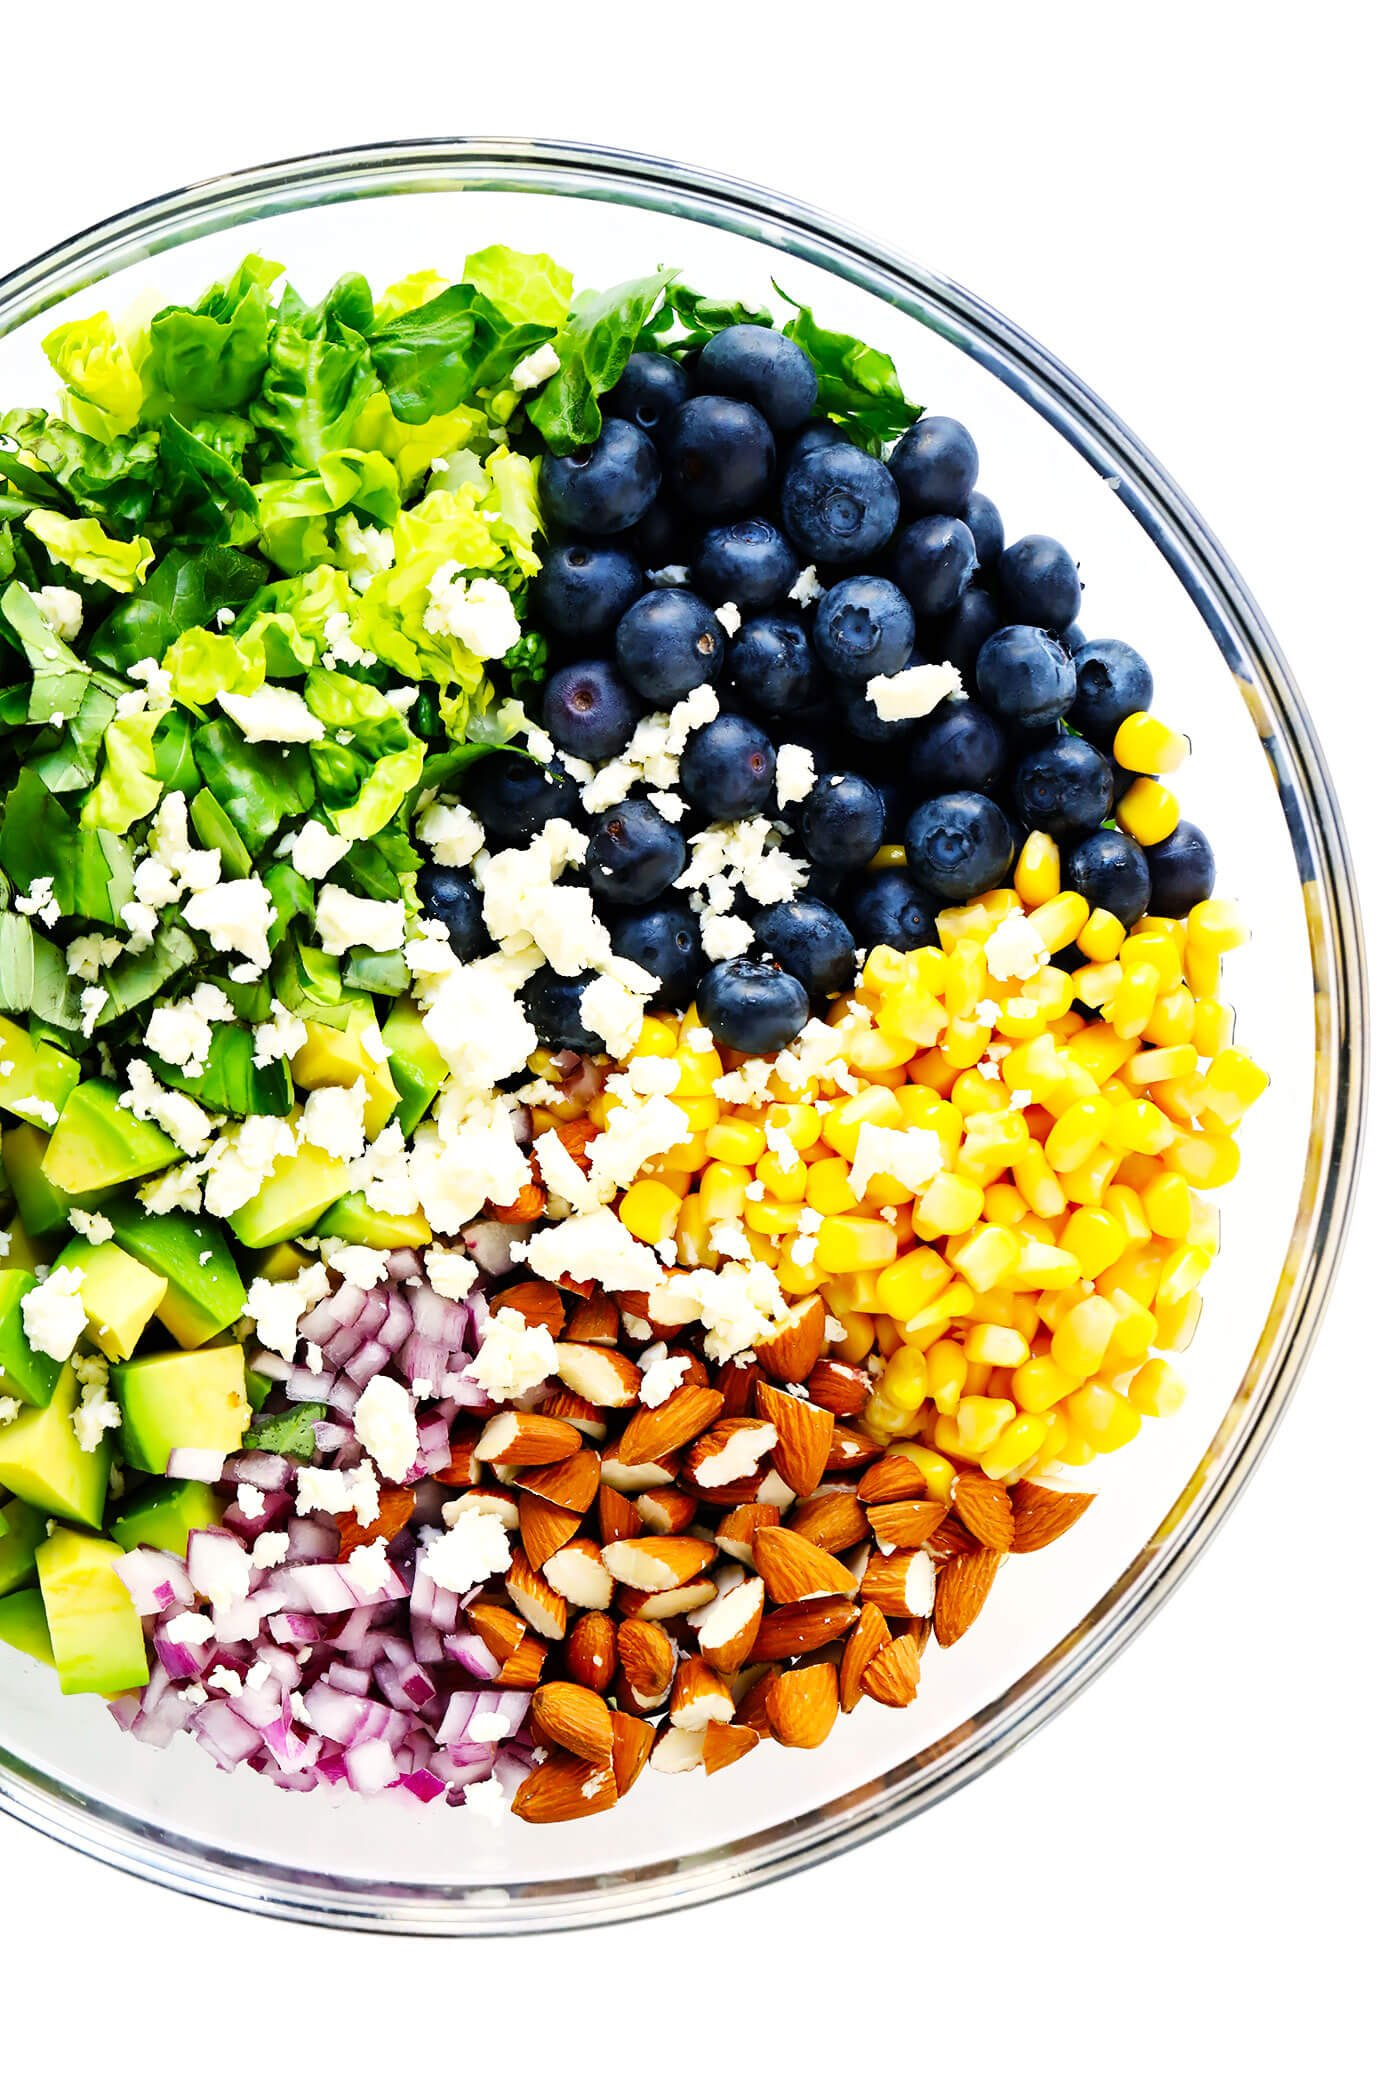 Bowl of ingredients to make blueberry corn and avocado chopped salad